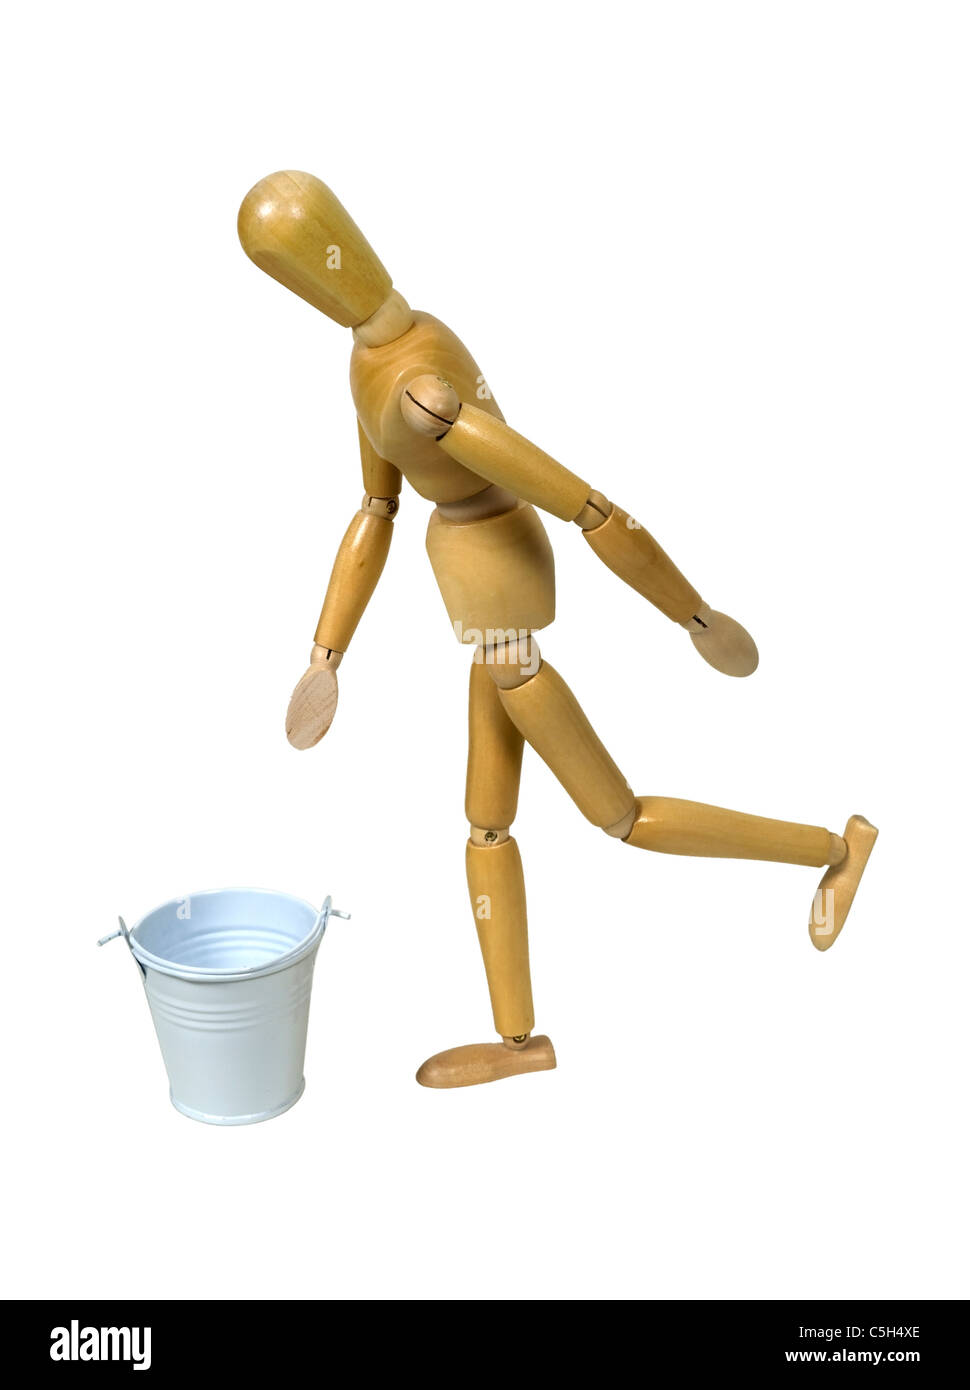 Kicking the bucket is a slang term meaning to die shown by a model kicking a white metal bucket - path included - Stock Image